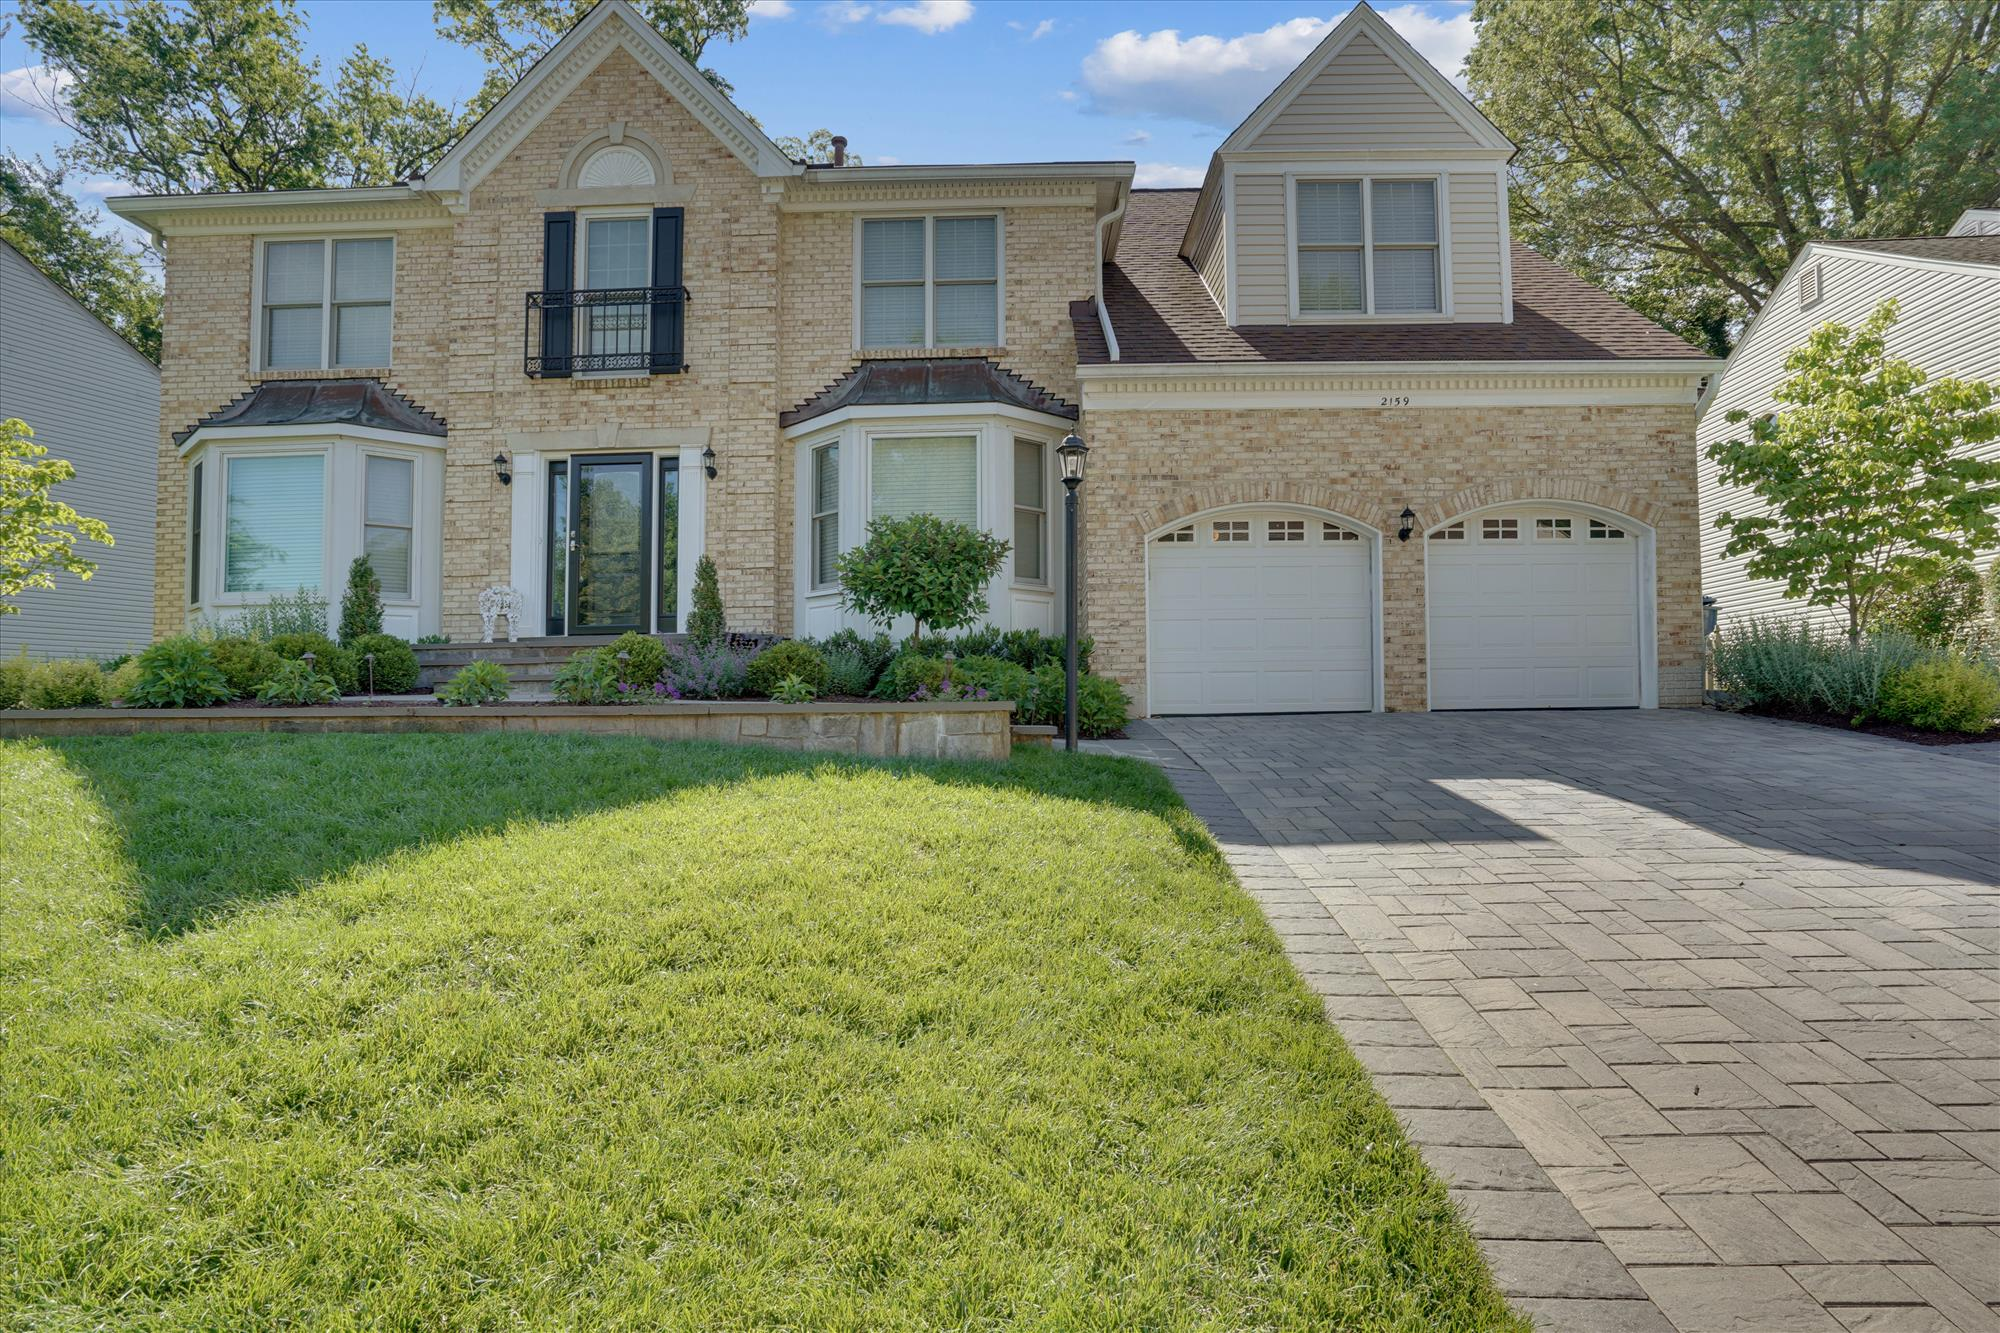 """Amazing opportunity to buy a completely turn key Vienna single family home that checks all of the boxes! Renovated in 2016 inside, plus a $300k exterior renovation that includes a 3-season huge screened-in-porch, patio with fire pit, hot tub, built-in gas grill, and a natural gas generator. Inside the home, you'll find a sunlit main level with hardwood floors that flow through the foyer, formal living room, office, huge dining room, large kitchen with island, white cabinets, granite counters, stainless steel appliances and gas cooking. The eat-in kitchen overlooks a large vaulted family room with skylights, luxury vinyl flooring, and wood burning fireplace. The mud room has space for cubbies/hooks, the washer/dryer, and a side entrance to a fully fenced space of the yard. The 2-car garage actually fits both cars and storage. Upstairs, you'll find a large primary bedroom with multiple closets, recessed lighting, vaulted ceiling, a sitting area, a dressing area, plus a renovated bathroom with glass enclosed shower, tub, and dual vanity. Each of the 3 secondary bedrooms have Elfa shelving in the large closets, and each has an en-suite bath with tub - all have been renovated! The basement is entirely finished and carpeted, which offers 2 lower level """"rooms"""" currently used as guest rooms, with another fully renovated bathroom. There's a large rec room and a large game room/media room. So much space! The owners have done a LOT of updating, including: Front Door Replaced 2021, Attic HVAC 2019, patio/hut tub/fire pit 2019, French Doors on Office/Living Room 2019, driveway pavers 2018, screened in porch 2017, Water Heater 2017, 2015 Roof, Irrigation System, electric collar fence. HOA offers block parties and snow removal."""